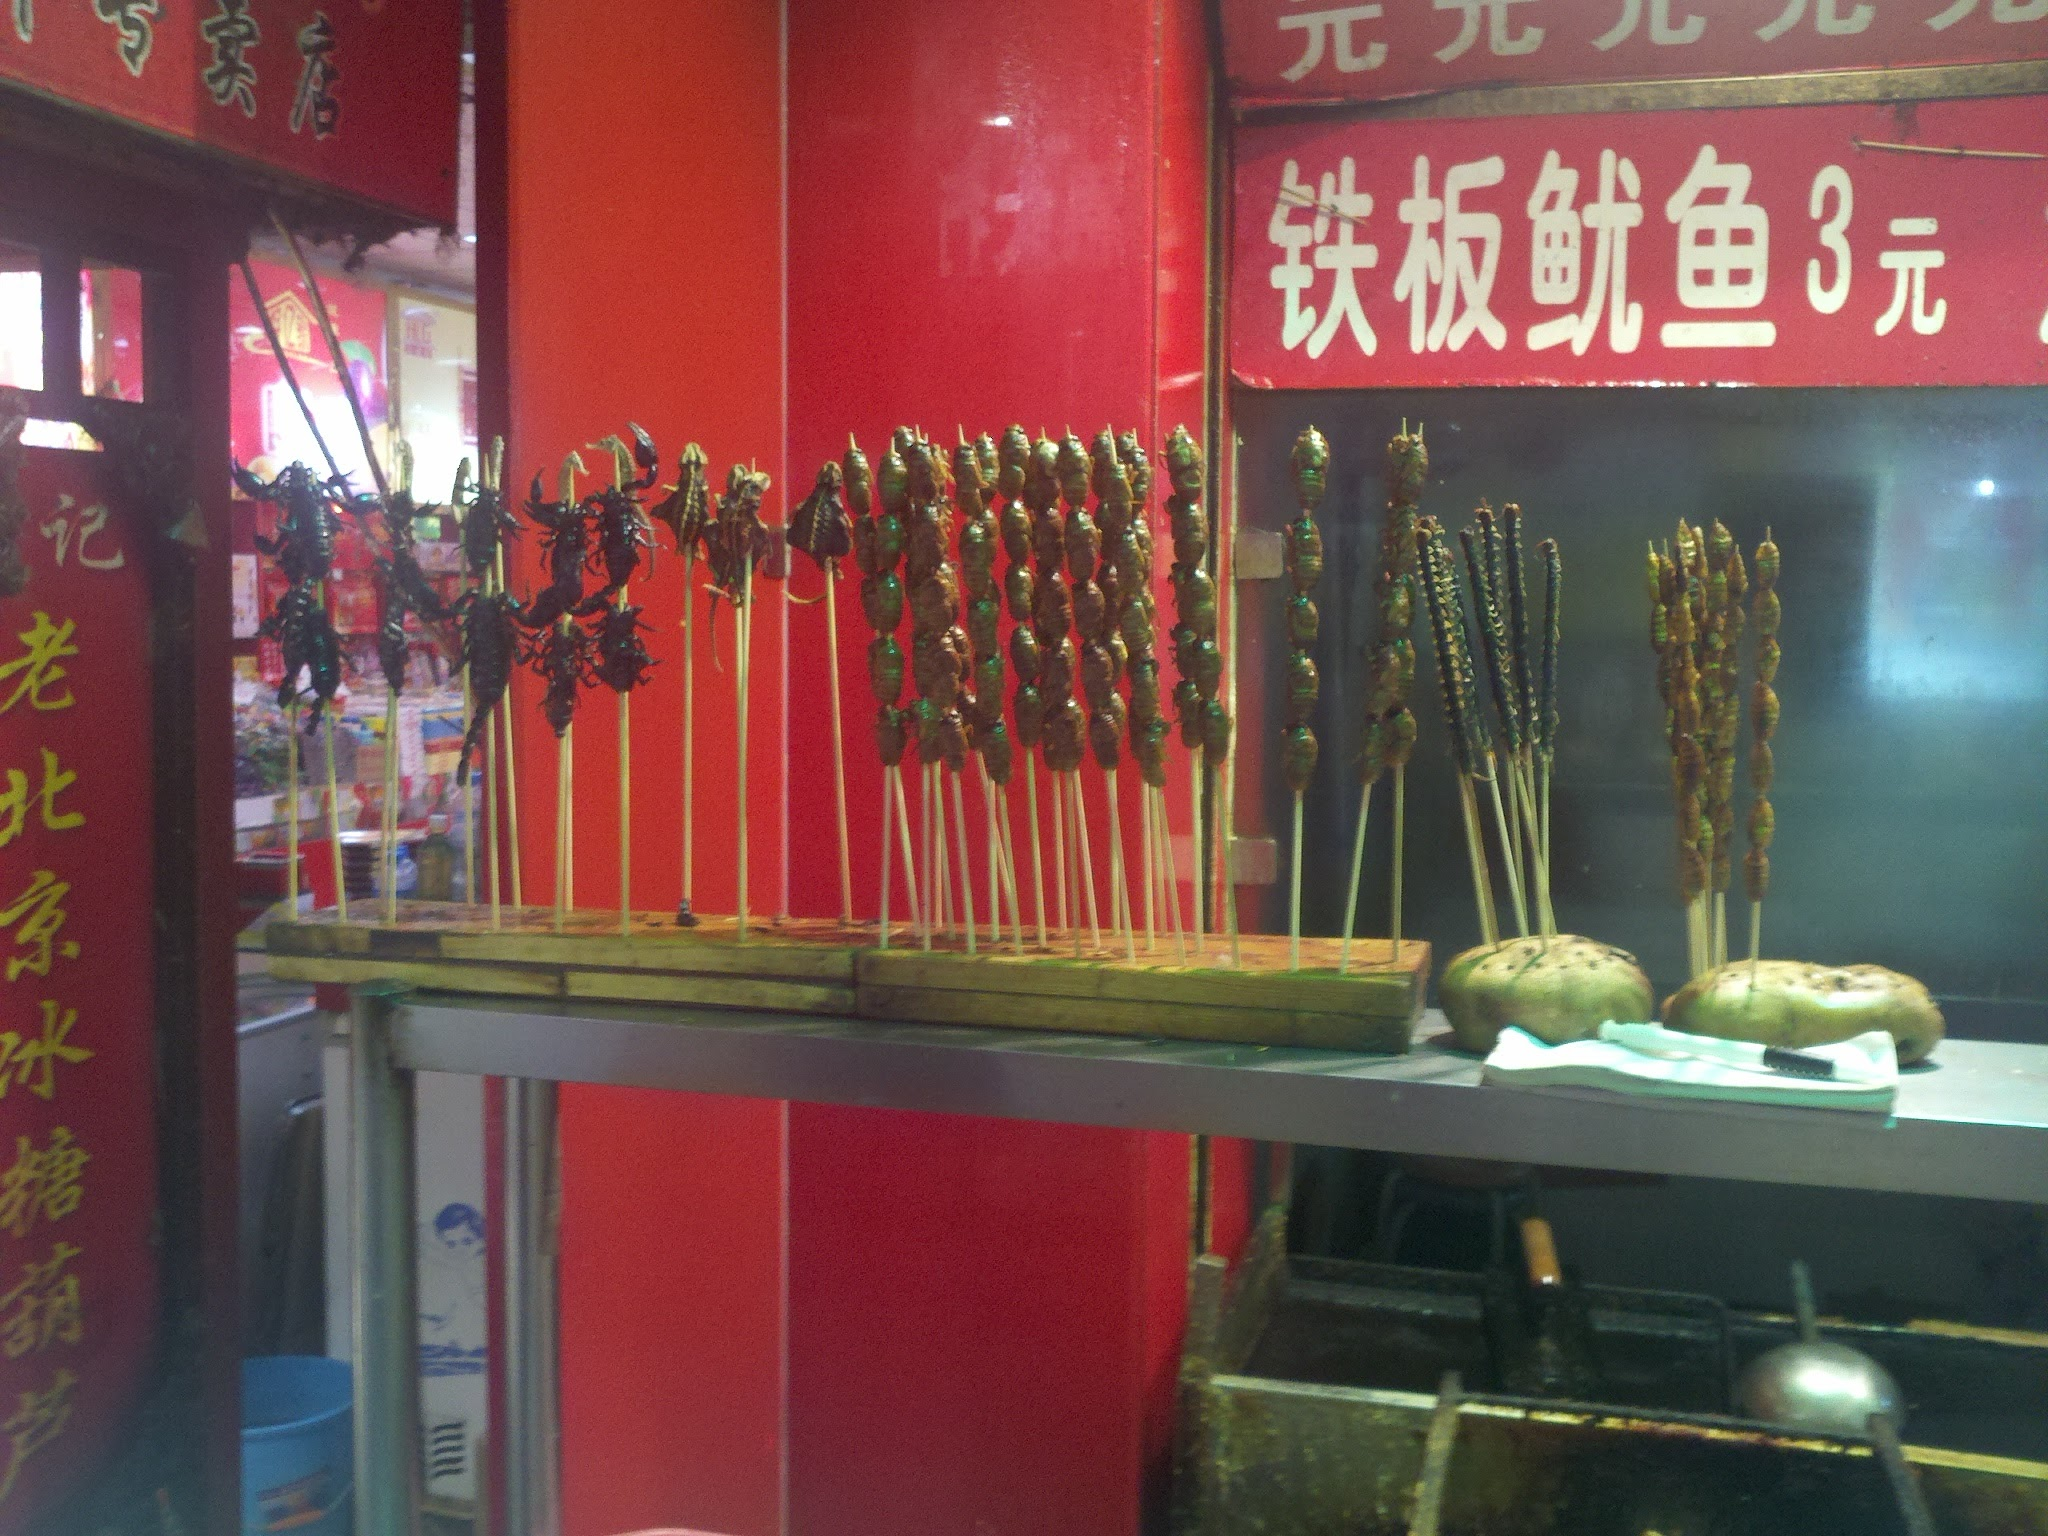 Bugs on a stick in Beijing